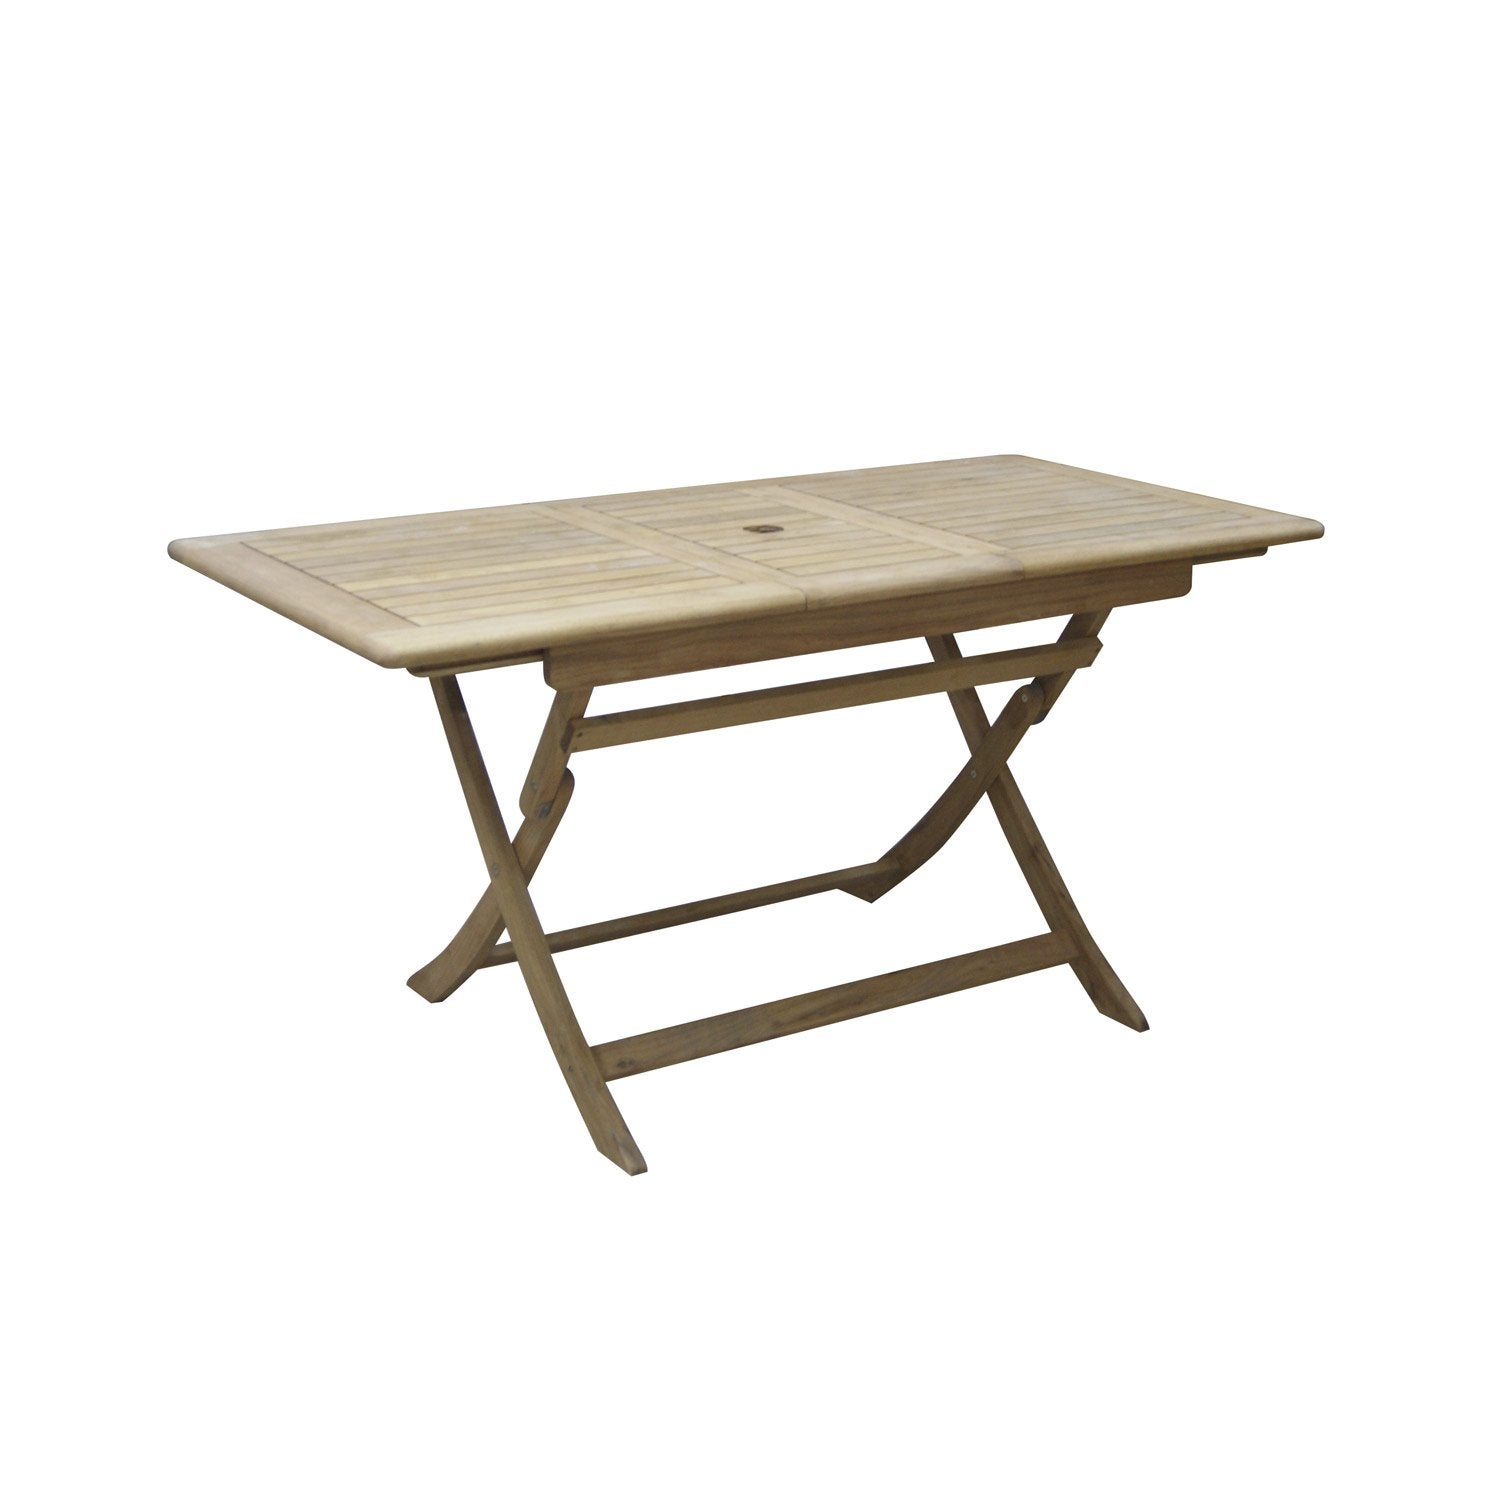 Extension de table de jardin rectangulaire robin naterial leroy merlin - Leroy merlin table jardin ...